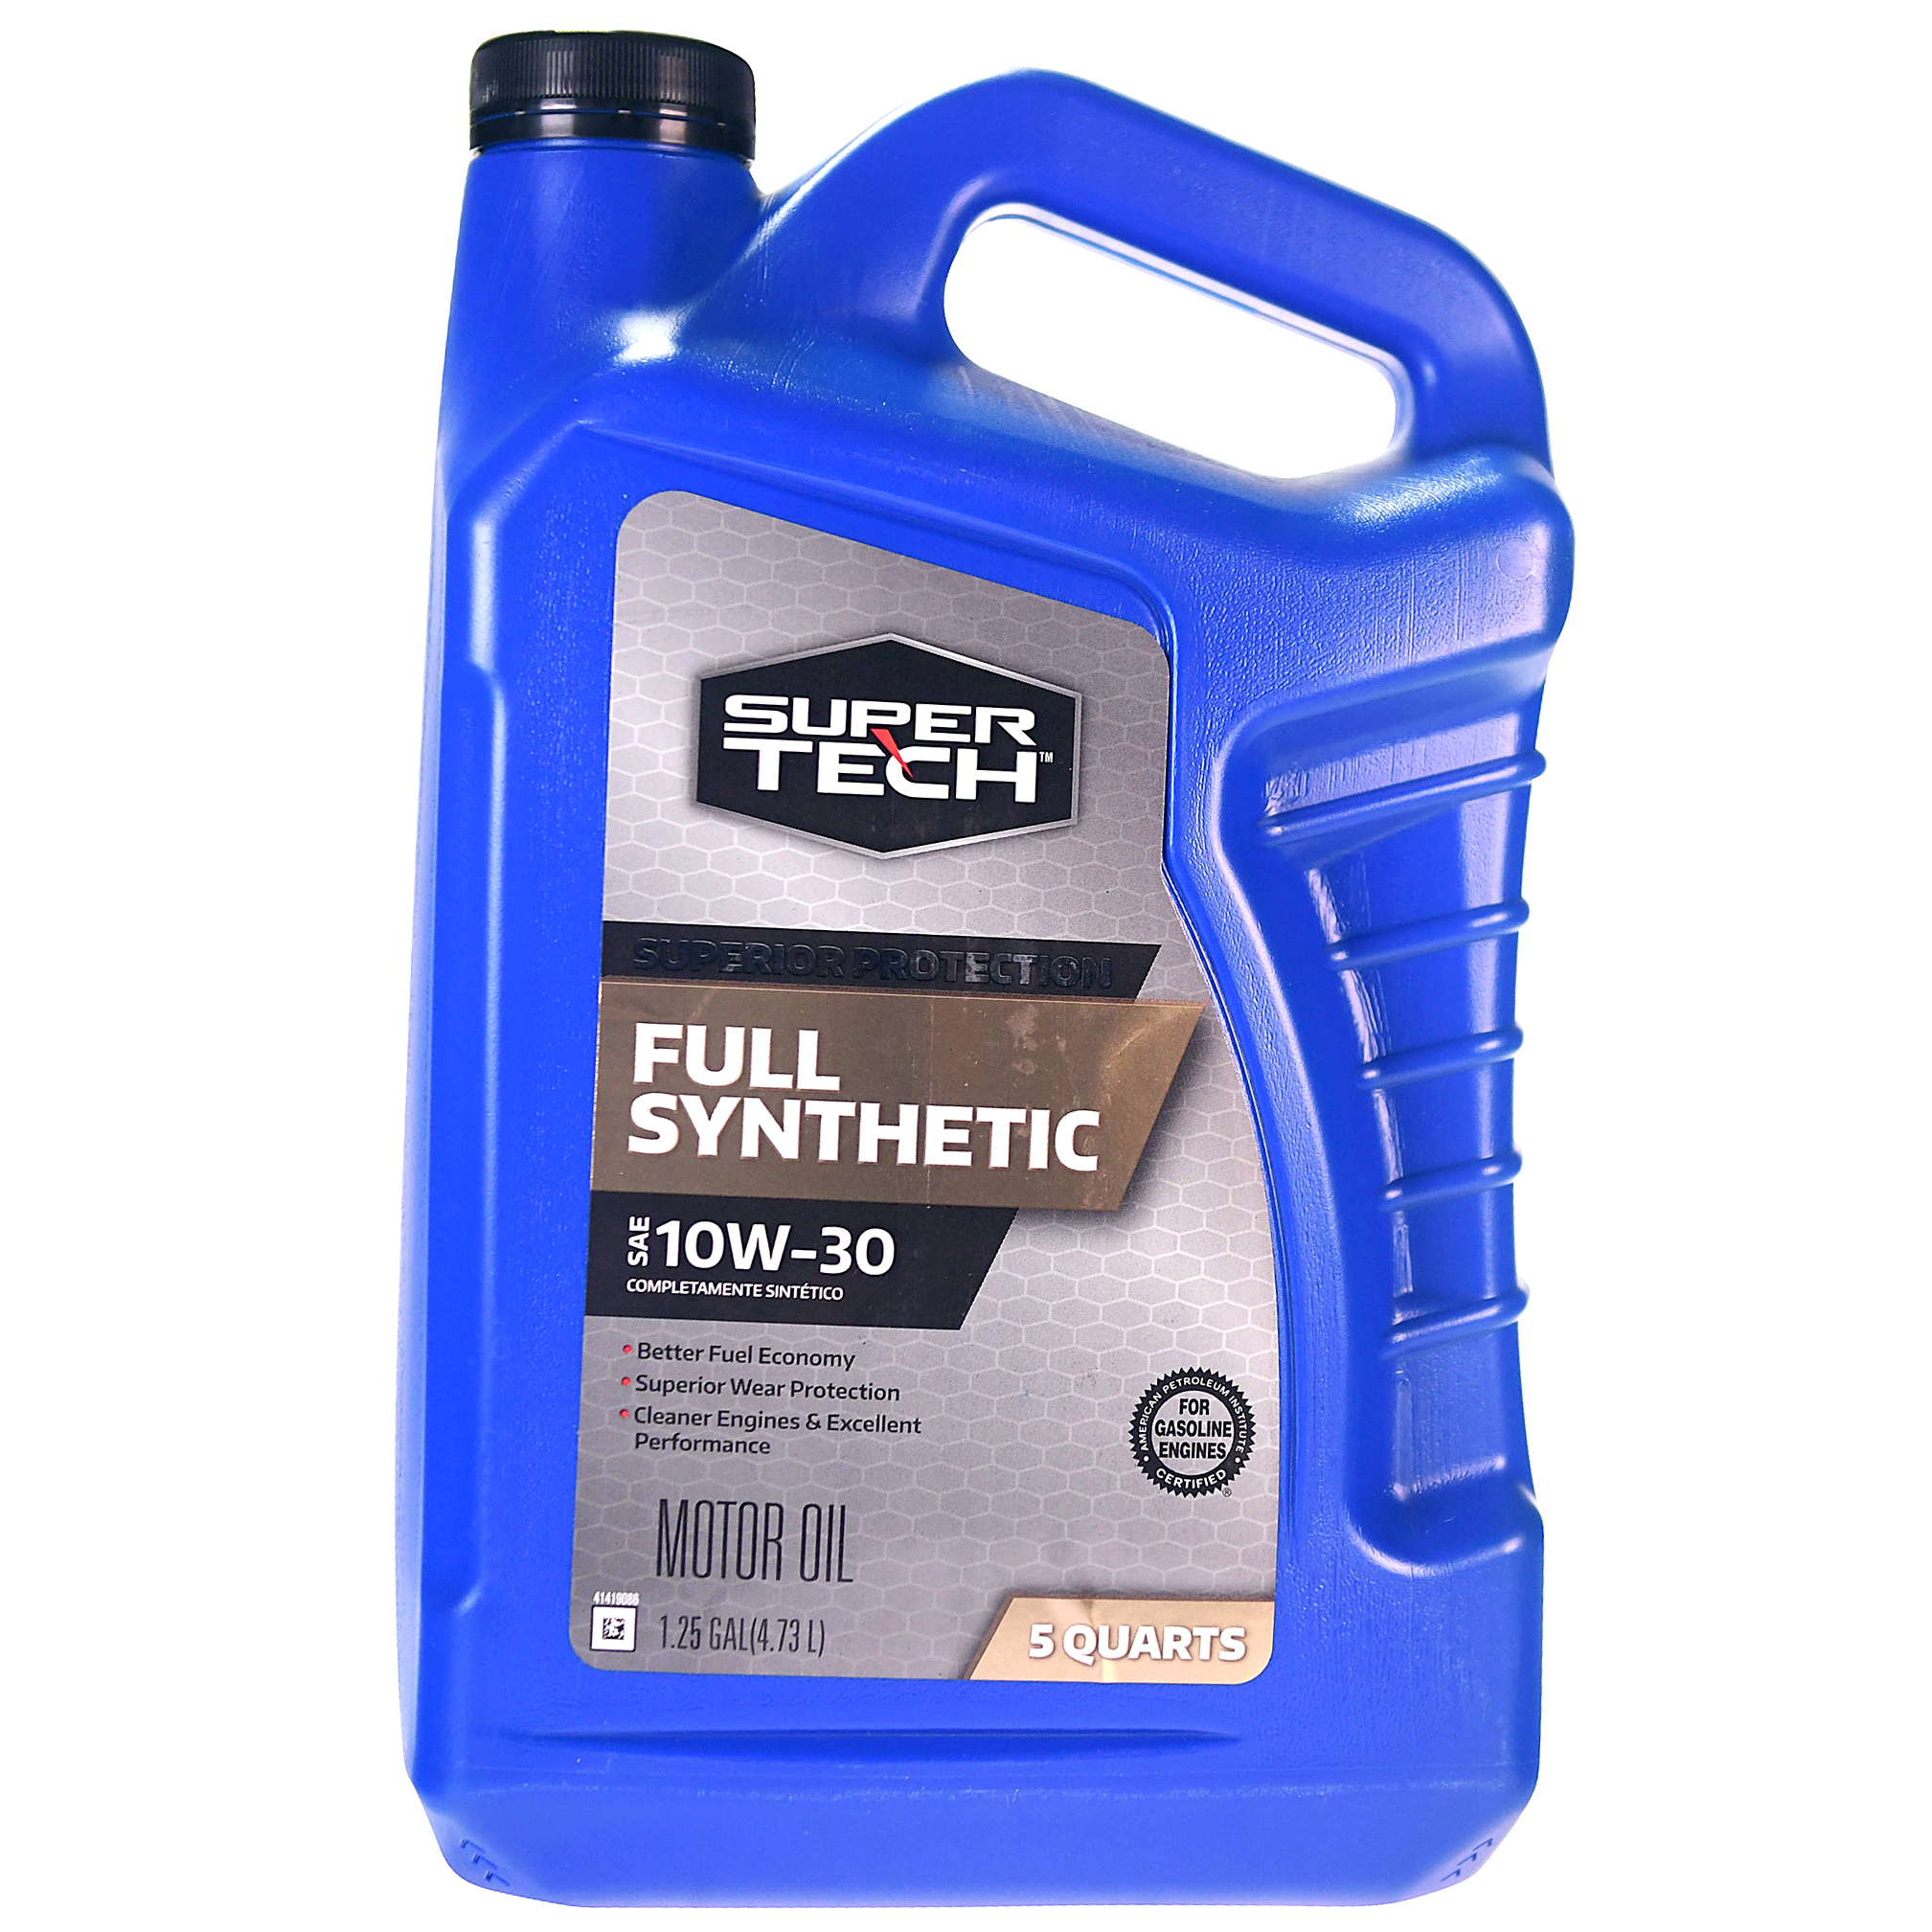 Super Tech Full Synthetic SAE 10W-30 Motor Oil, 5 Quarts